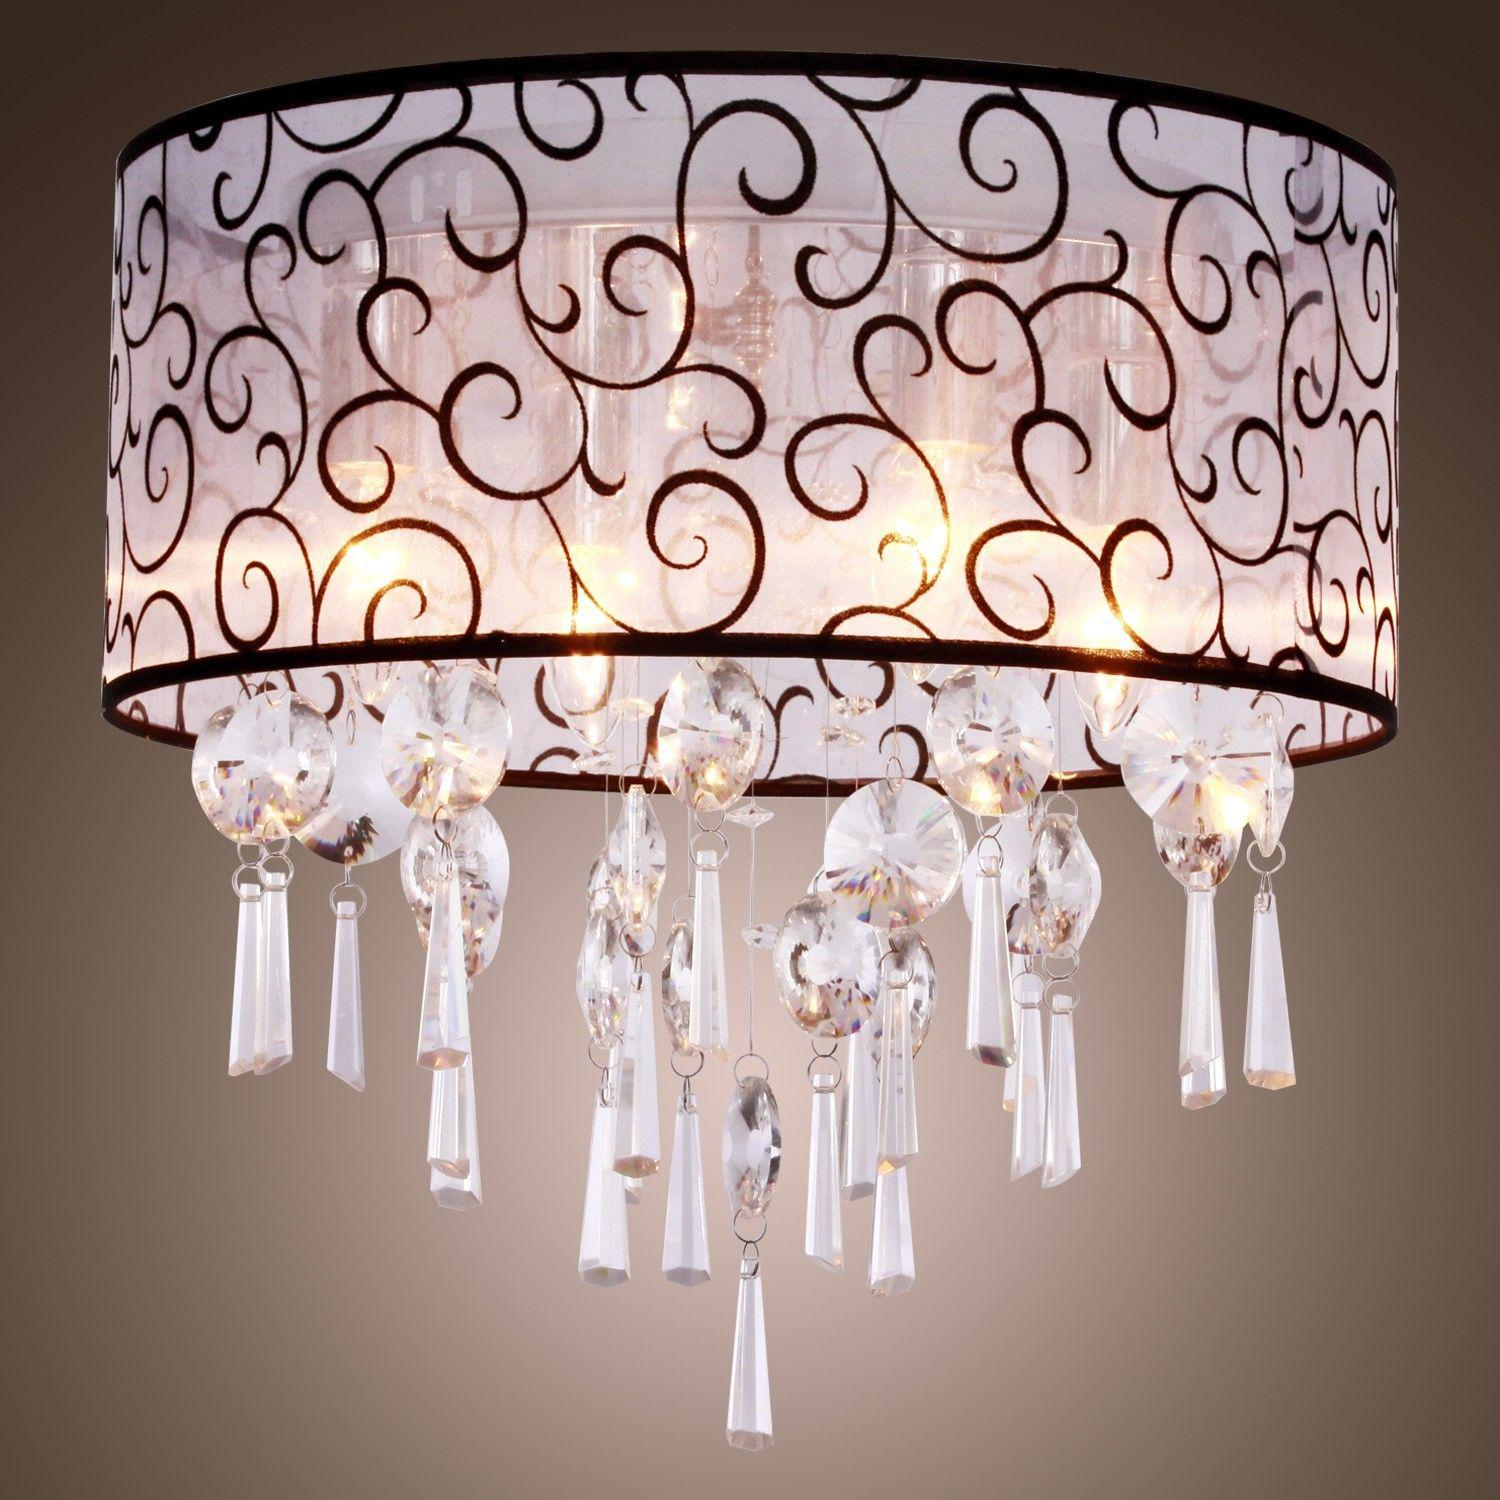 Discount Contemporary Crystal Ceiling Light Fixture